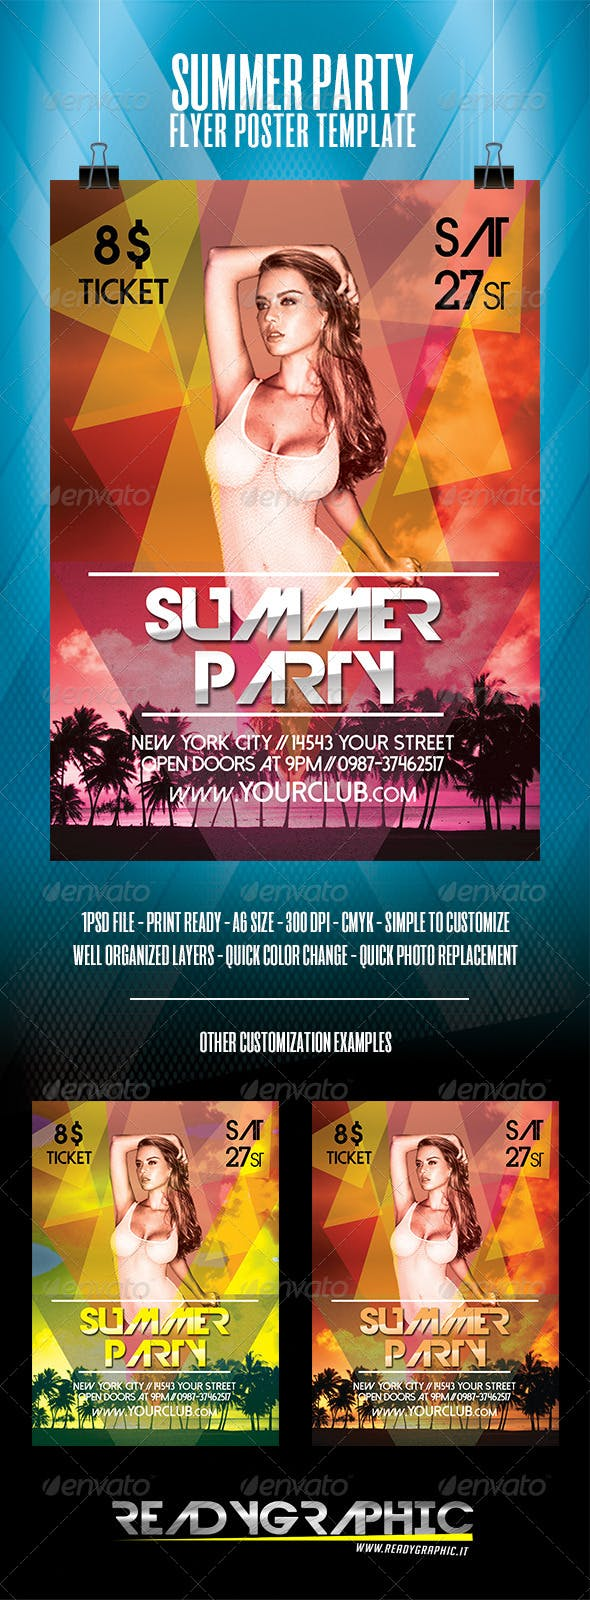 summer party flyer poster template by readygraphic graphicriver